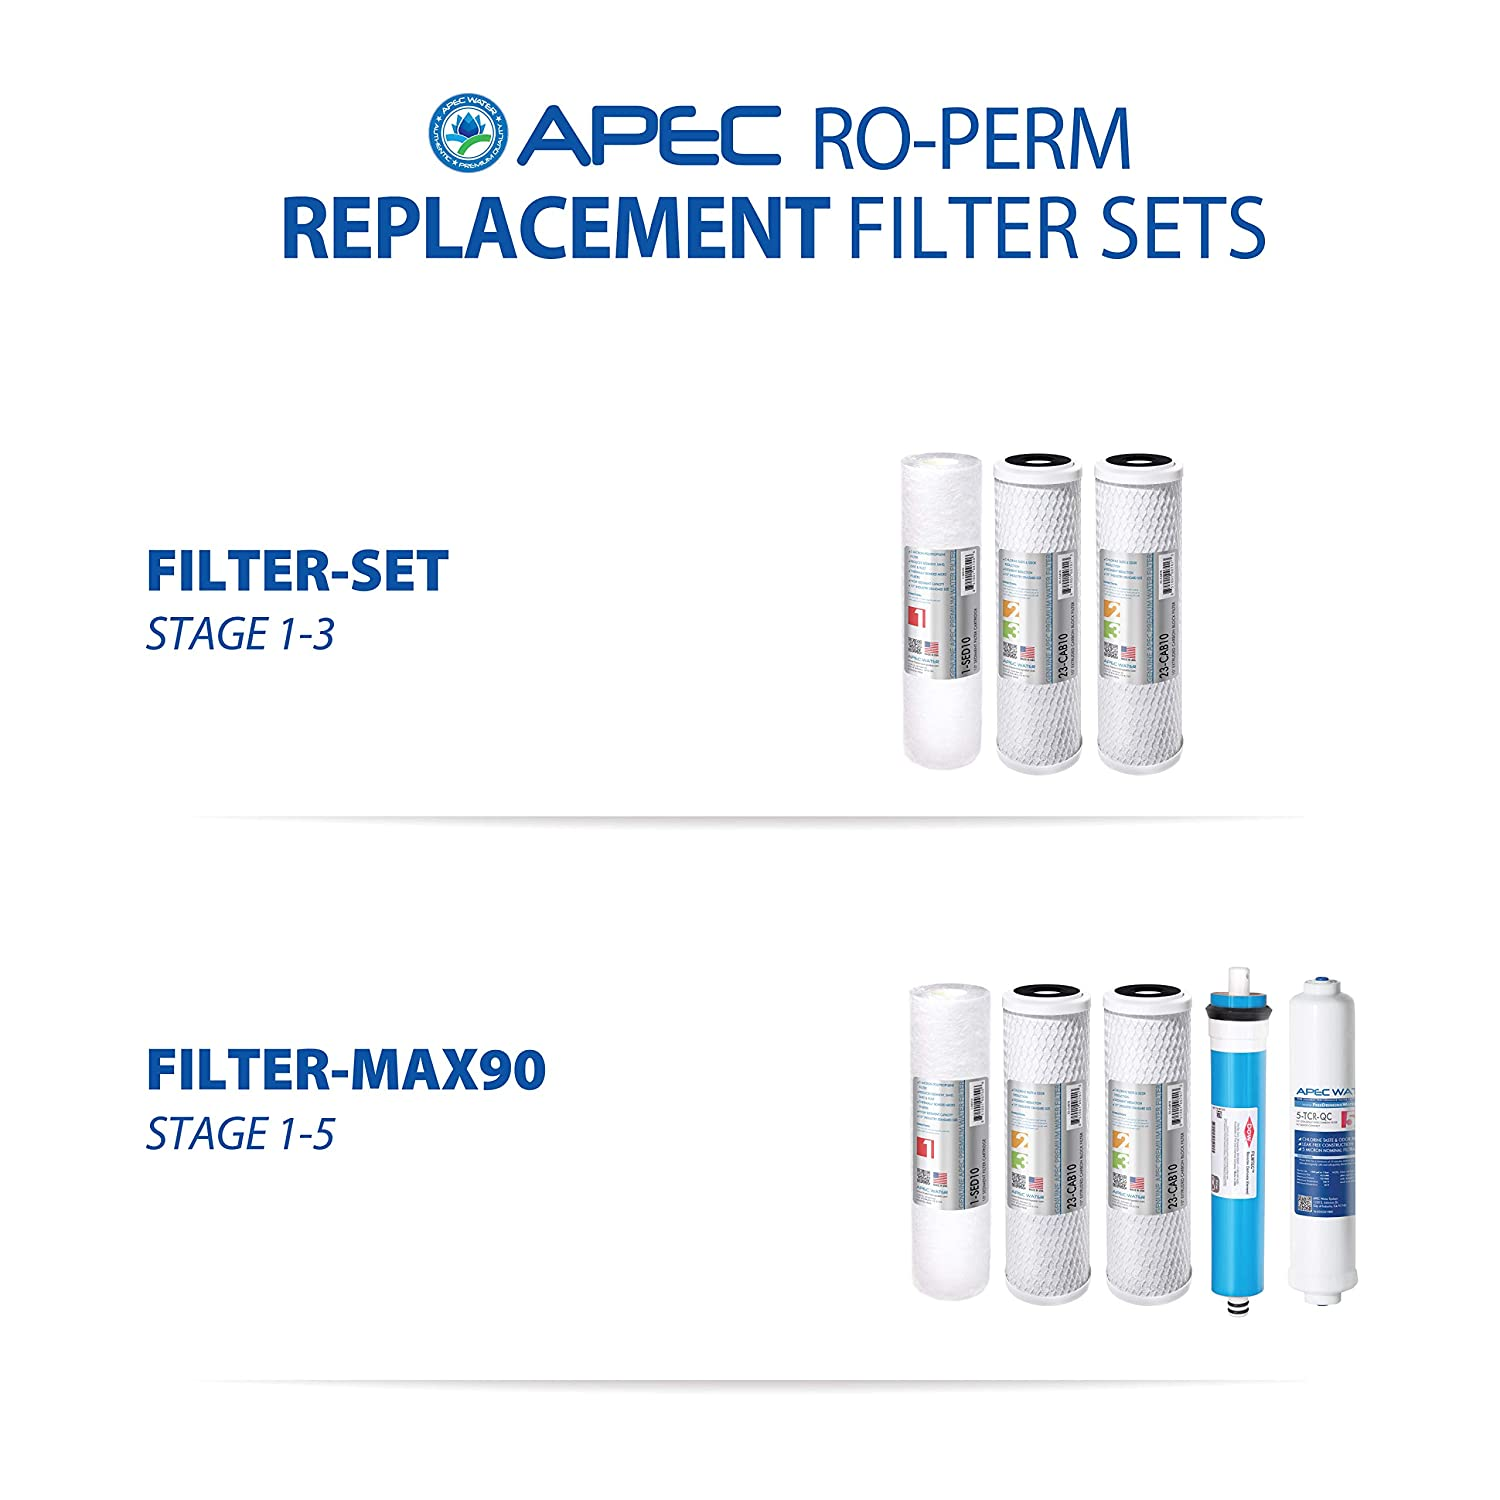 Ultimate RO-PERM APEC Top Tier Supreme High Efficiency Permeate Pumped Ultra Safe Reverse Osmosis Drinking Water Filter System for Low Pressure Homes